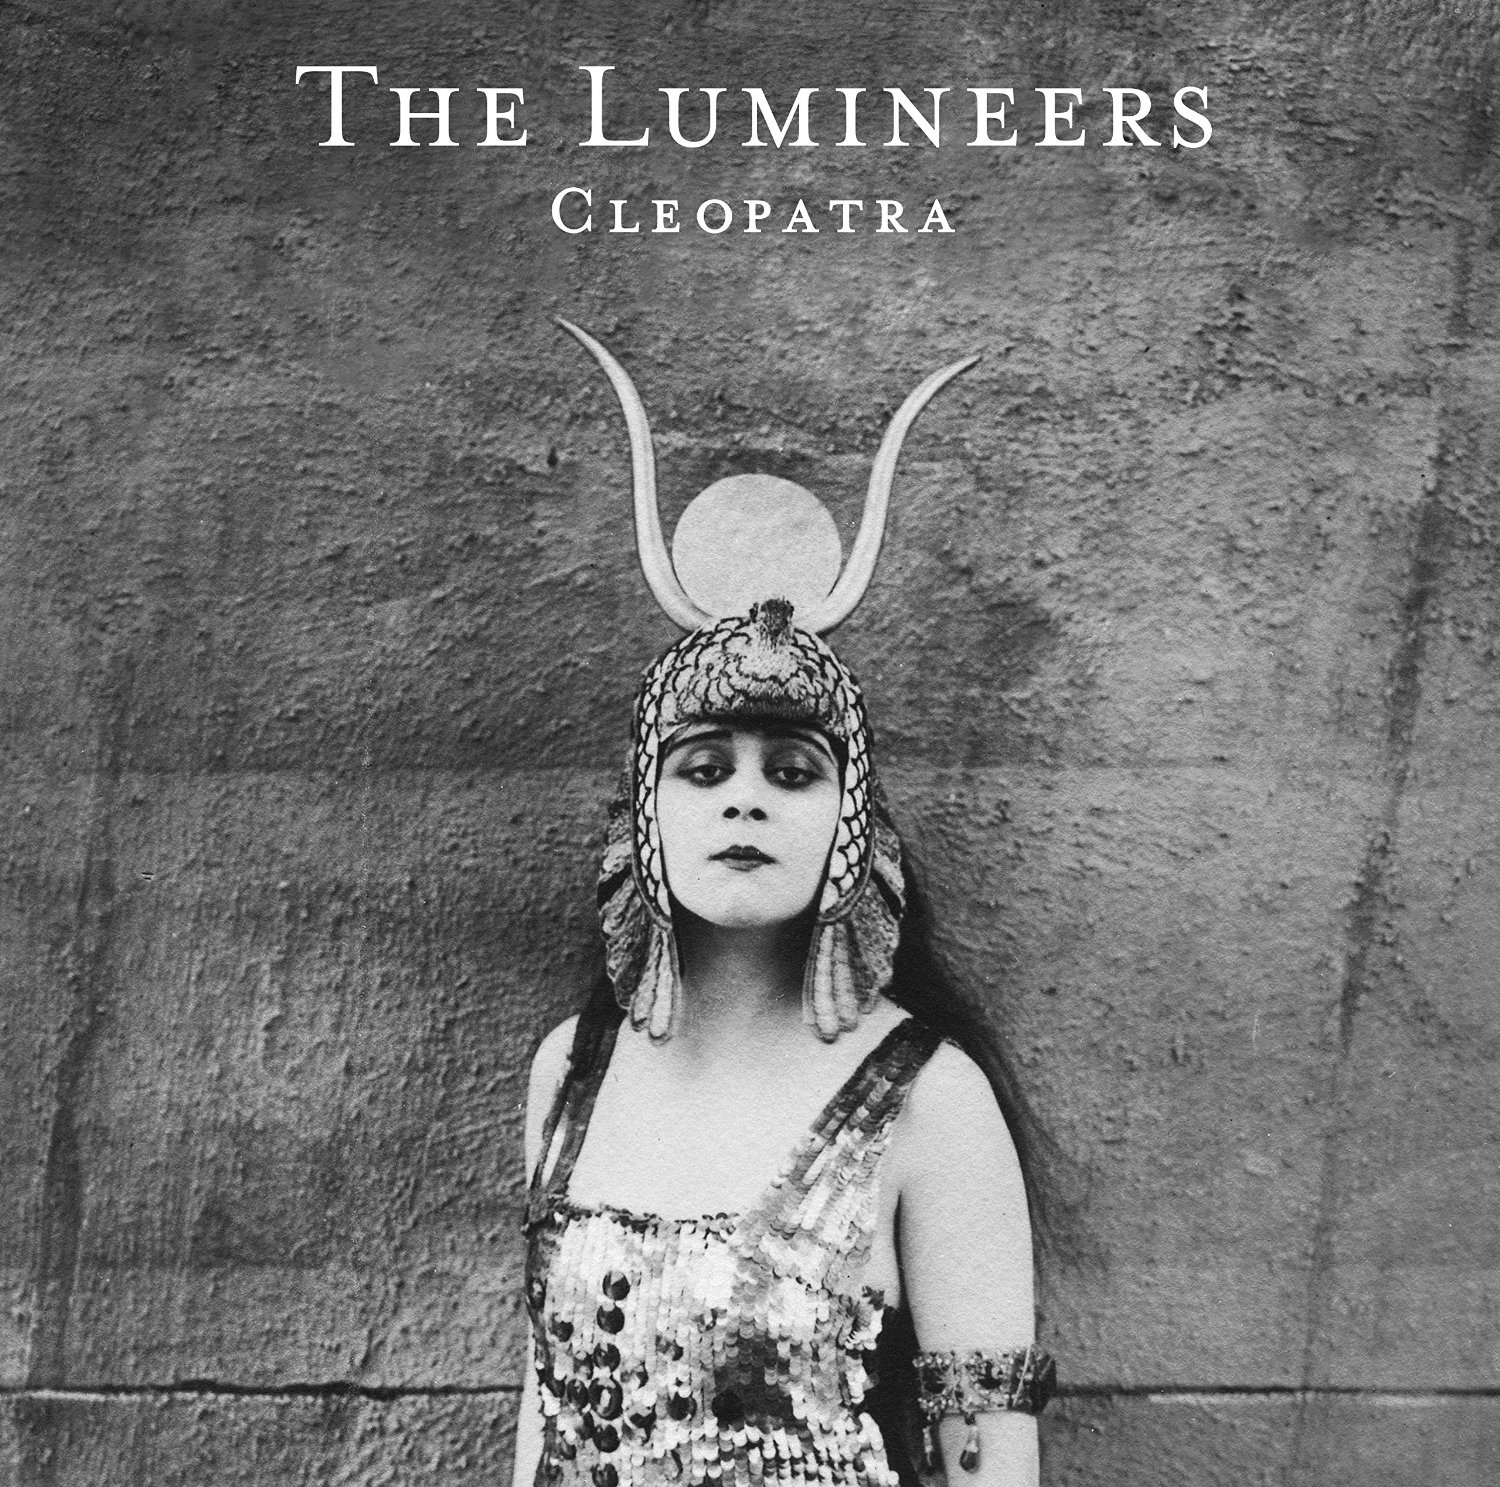 The Lumineers: Cleopatra [Album Review